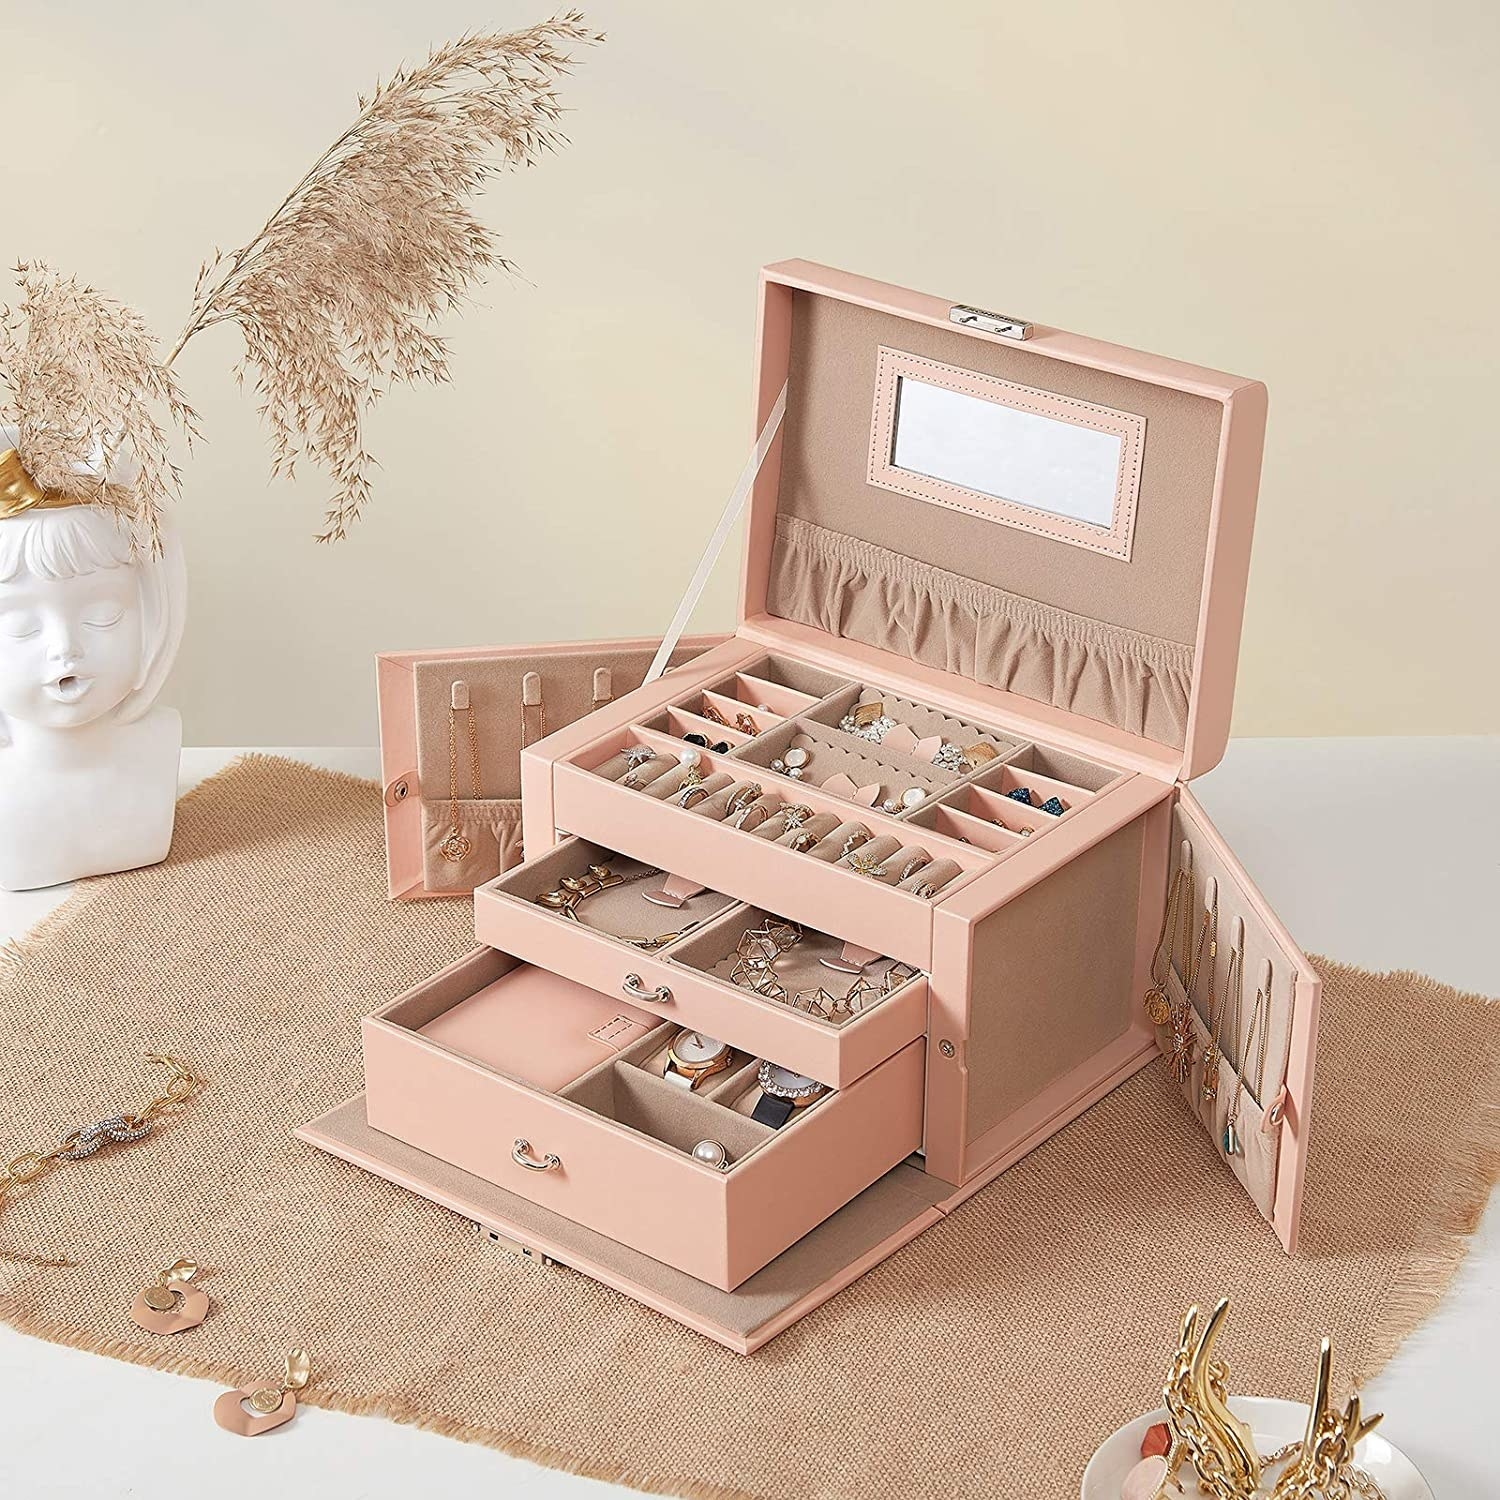 jewelry box with all compartments open showing different types of jewelry